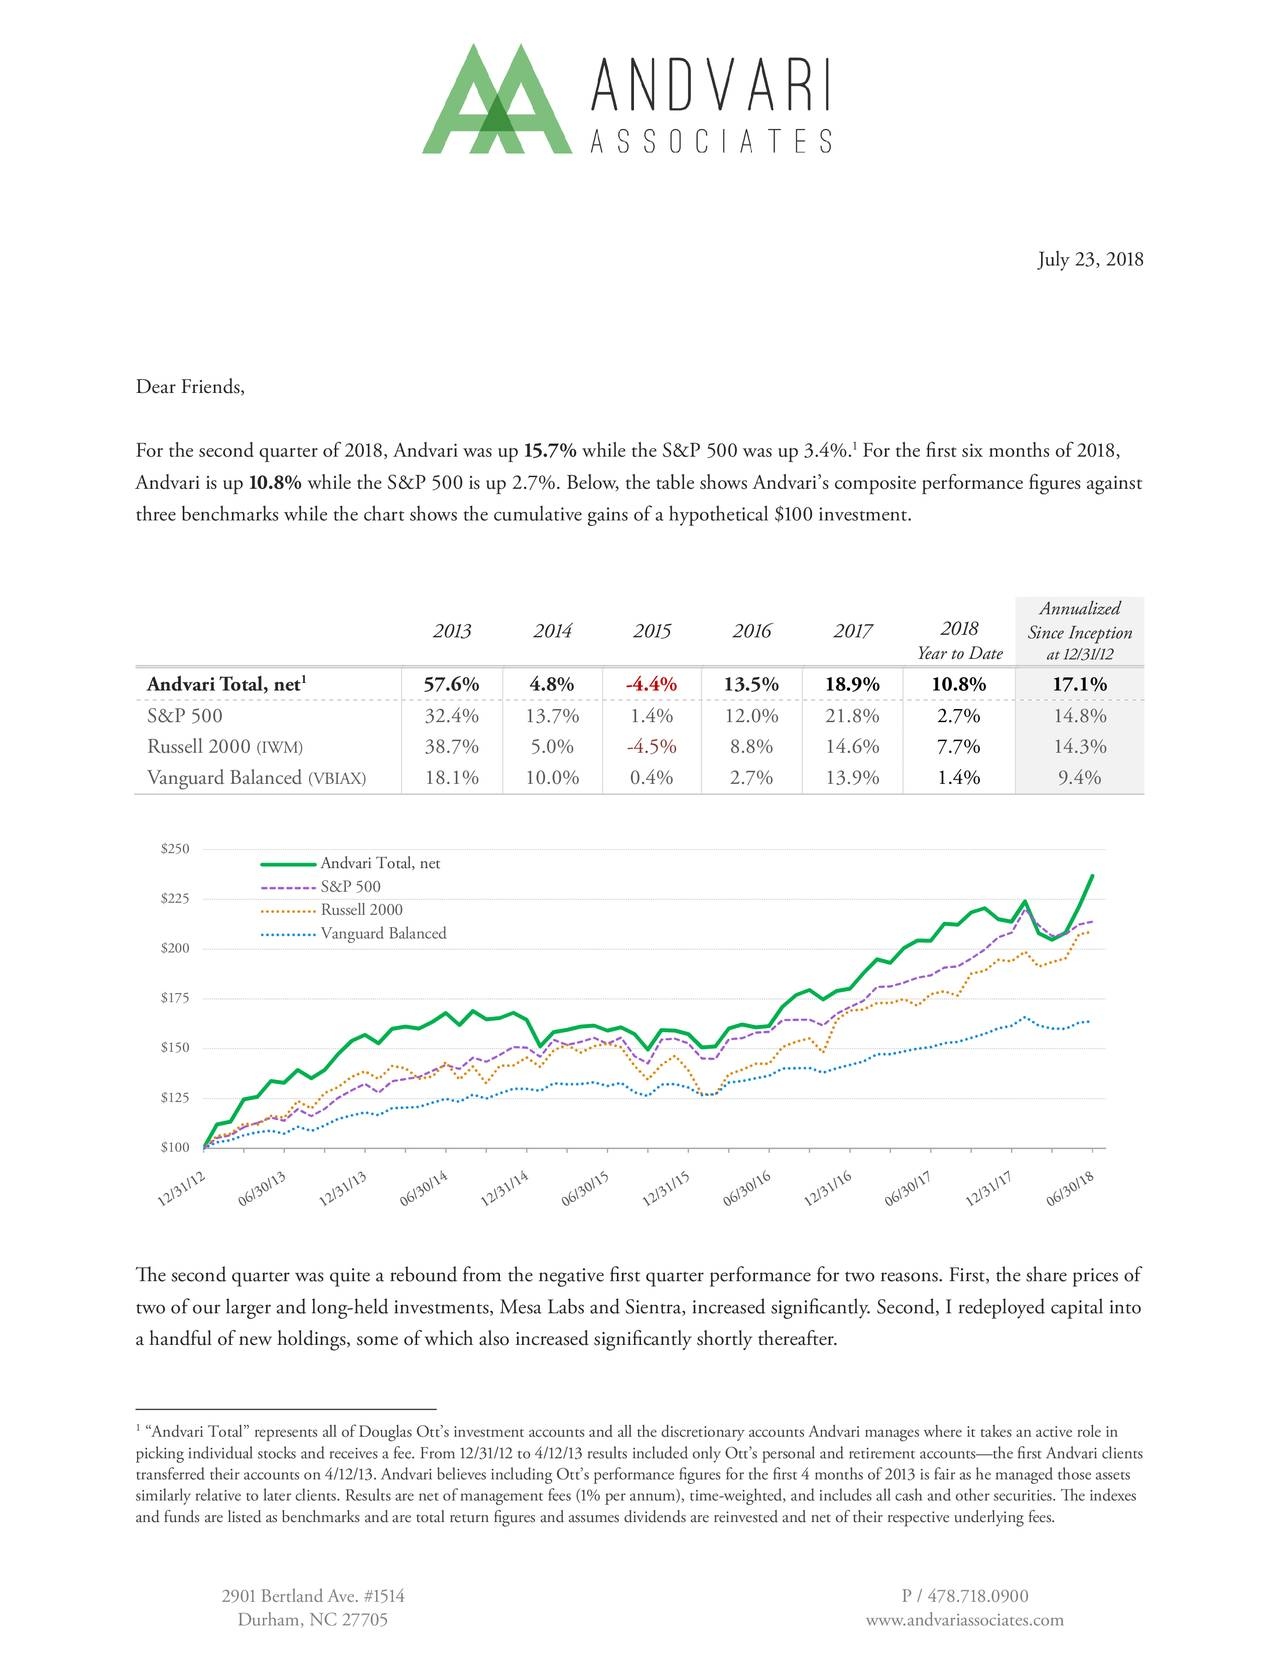 """Dear Friends, For the second quarter of , Andvari was up .% while the S&P  was up .%. For the first six months of , Andvari is up .% while the S&P  is up .%. Below, the table shows Andvari's composite performance figures against three benchmarks while the chart shows the cumulative gains of a hypothetical $ investment. Annualized       Since Inception Year to Date at // 1 Andvari Total, net 57.6% 4.8% ▯4.4% 13.5% 18.9% 10.8% 17.1% S&P  32.4% 13.7% 1.4% 12.0% 21.8% 2.7% 14.8% Russell  (IWM) 38.7% 5.0% ▯4.5% 8.8% 14.6% 7.7% 14.3% Vanguard Balanced (VBIAX) 18.1% 10.0% 0.4% 2.7% 13.9% 1.4% 9.4% $250 Andvari Total, net S&P 500 $225 Russell 2000 Vanguard Balanced $200 $175 $150 $125 $100 ▯e second quarter was quite a rebound from the negative first quarter performance for two reasons. First, the share prices of two of our larger and long▯held investments, Mesa Labs and Sientra, increased significantly. Second, I redeployed capital into a handful of new holdings, some of which also increased significantly shortly thereafter. 1""""Andvari Total"""" represents all of Douglas Ott's investment accounts and all the discretionary accounts Andvari manages where it takes an active role in picking individual stocks and receives a fee. From // to // results included only Ott's personal and retirement accounts—the first Andvari clients transferred their accounts on //. Andvari believes including Ott's performance figures for the first  months of  is fair as he managed those assets similarly relative to later clients. Results are net of management fees (% per annum), time▯weighted, and includes all cash and other securities. ▯e indexes and funds are listed as benchmarks and are total return figures and assumes dividends are reinvested and net of their respective underlying fees.  Bertland Ave. # P / .. Durham, NC  www.andvariassociates.com"""